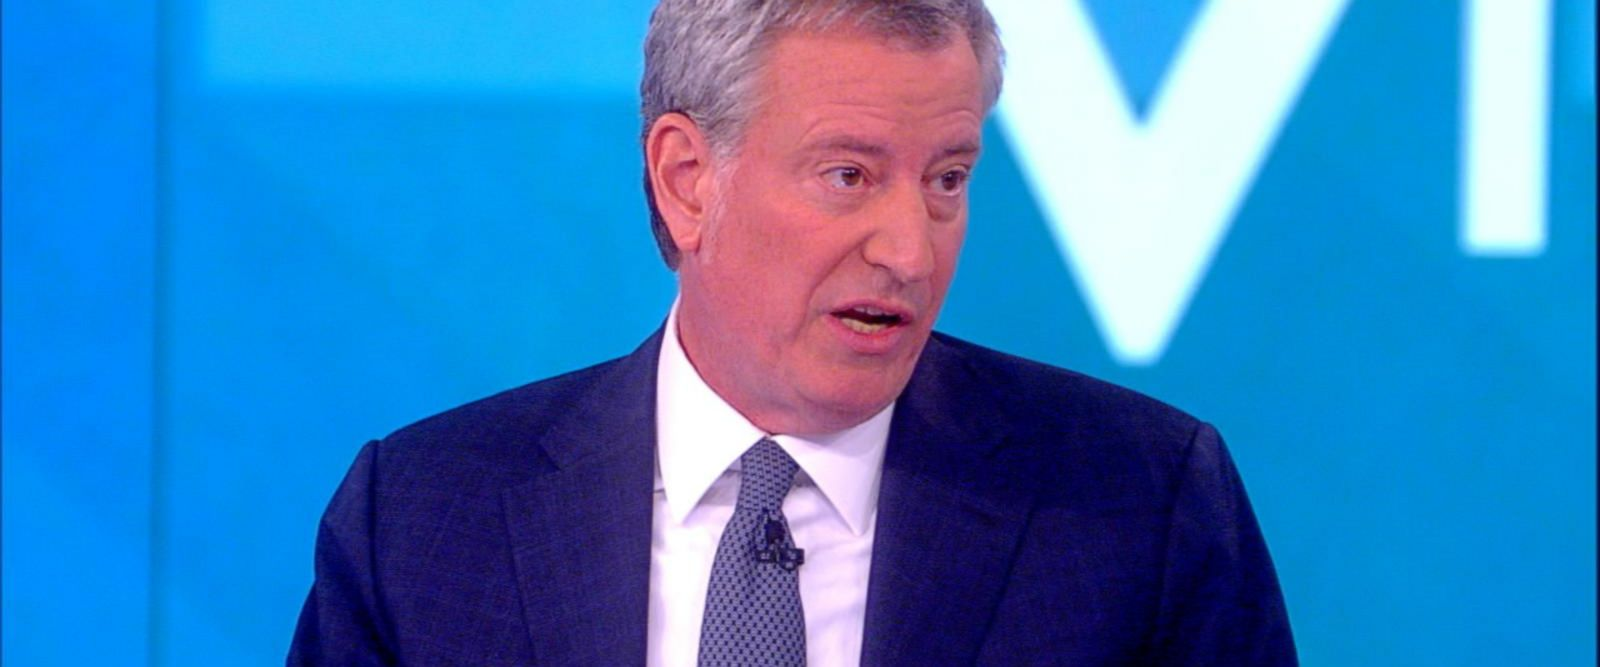 VIDEO: New York City Mayor Bill de Blasio explains his plan for free health care